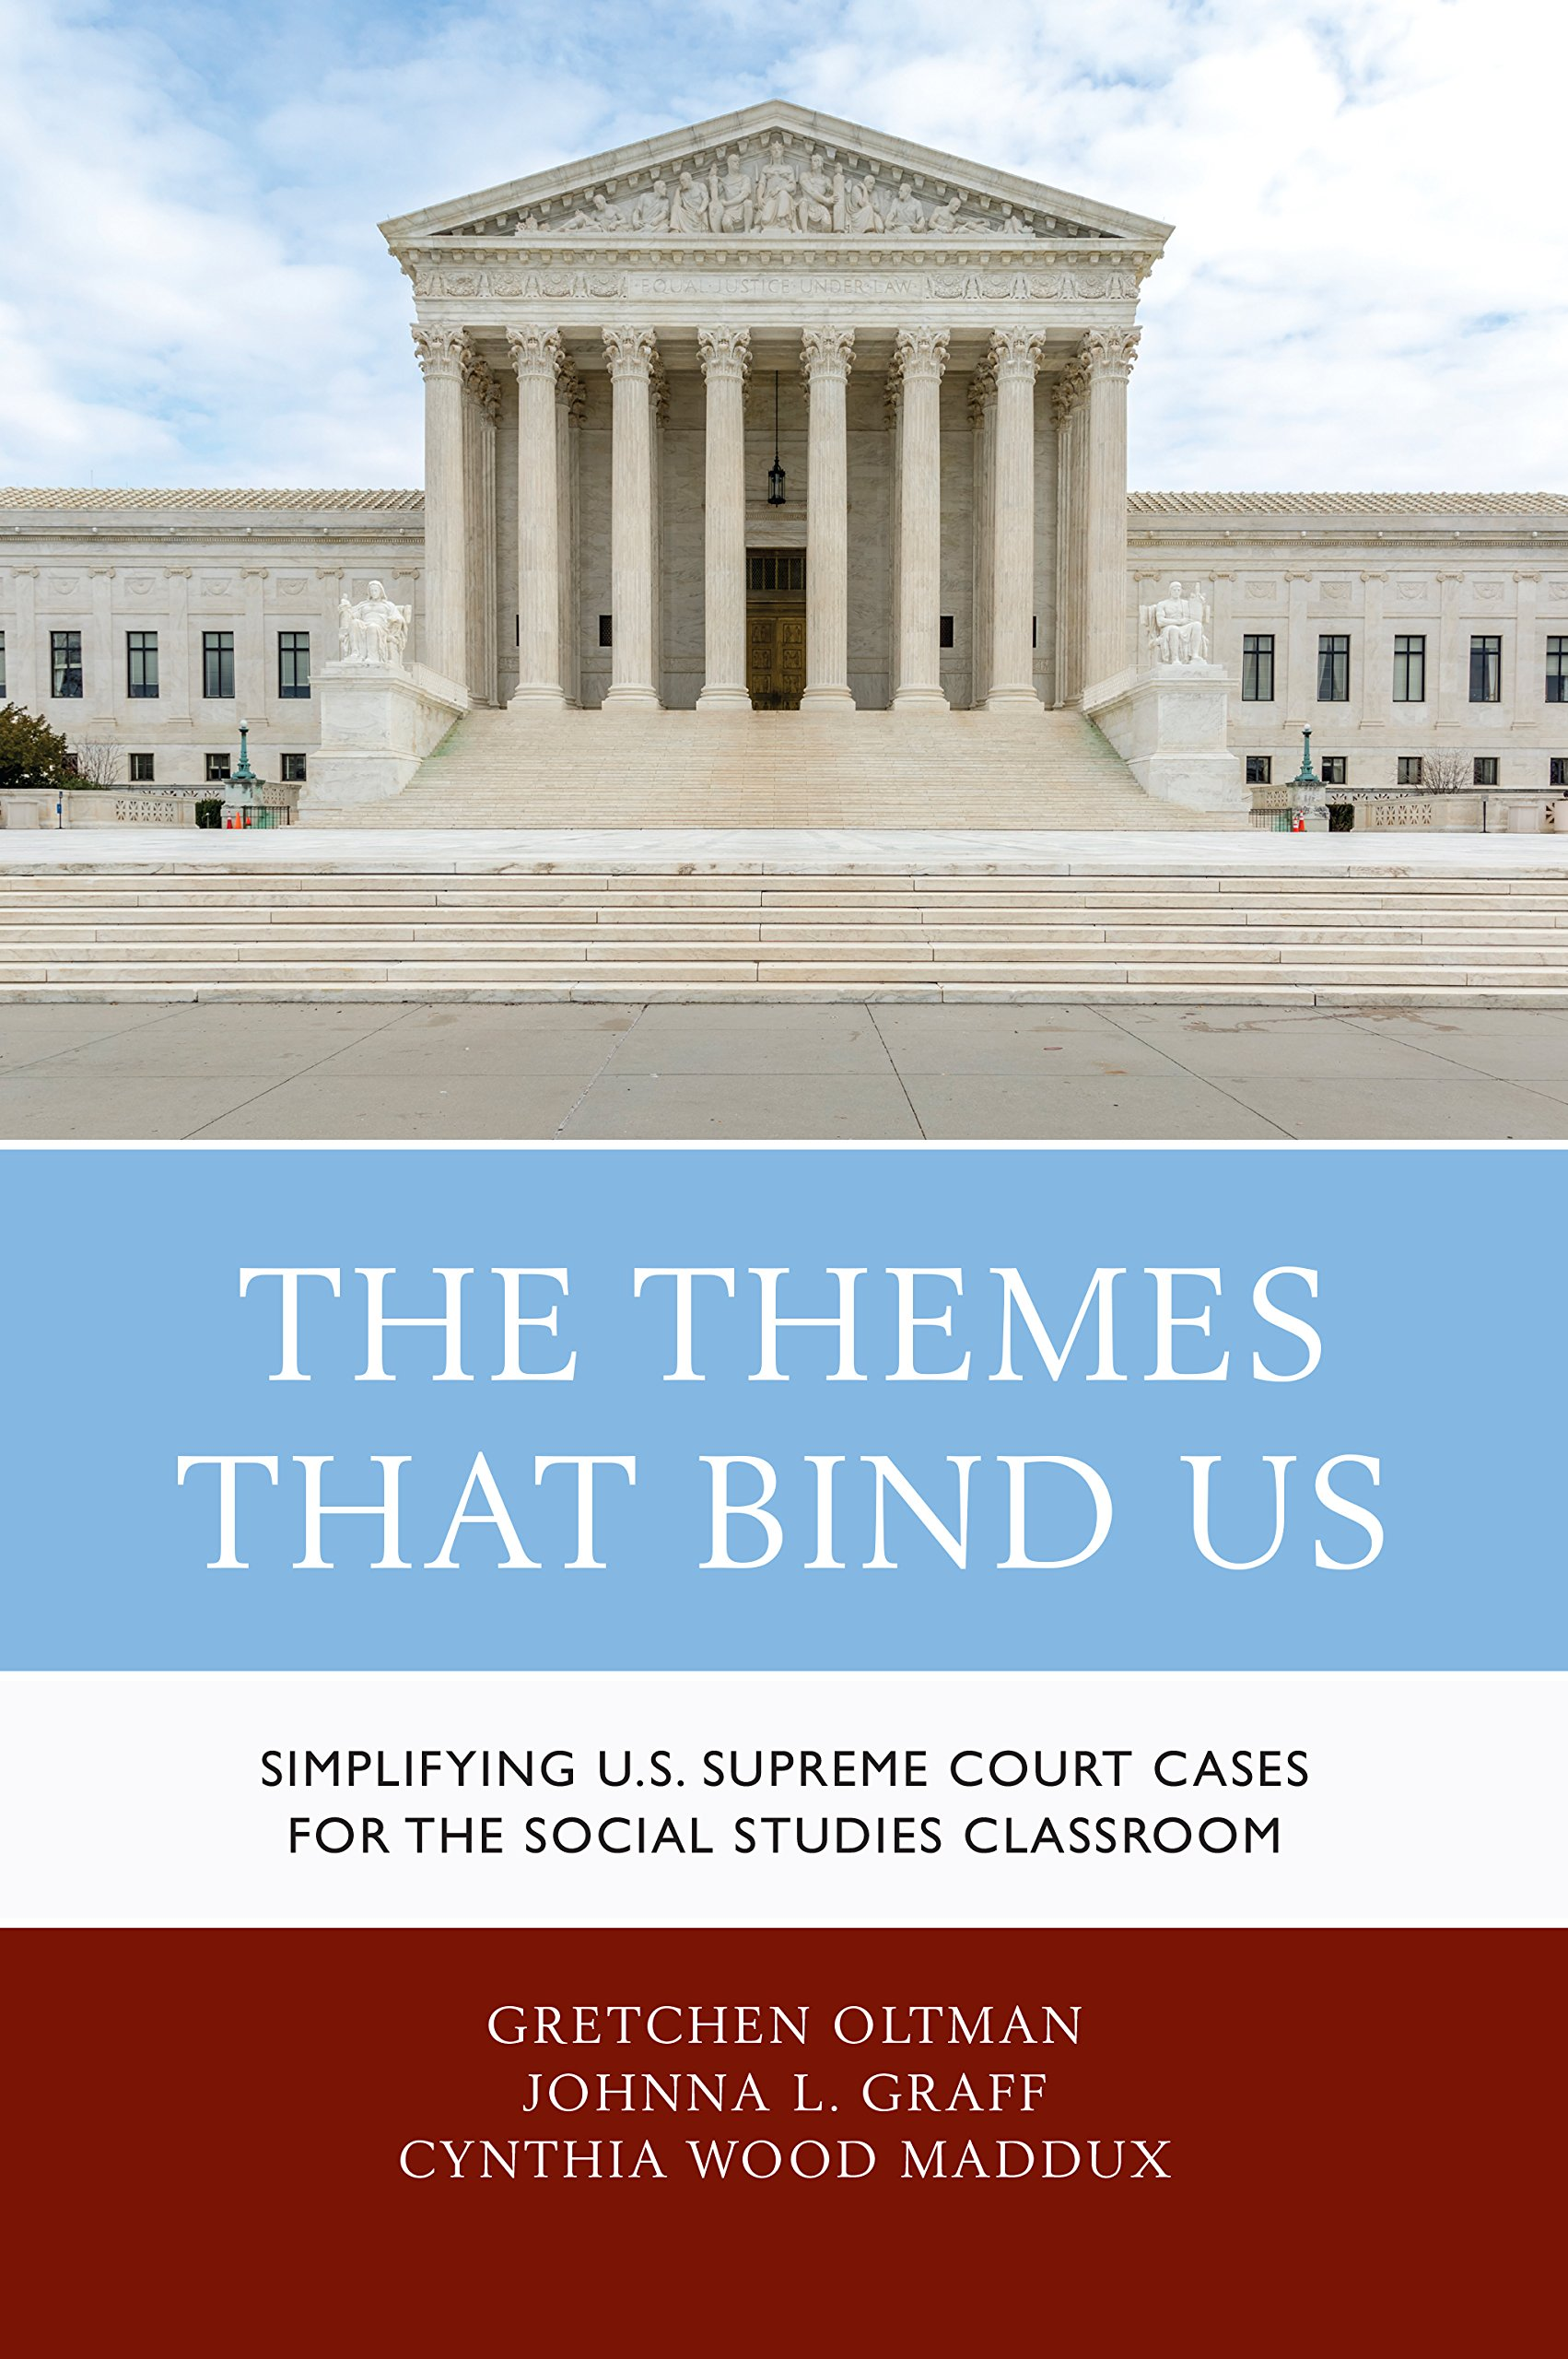 The Themes That Bind Us: Simplifying U.S. Supreme Court Cases for the Social Studies Classroom PDF